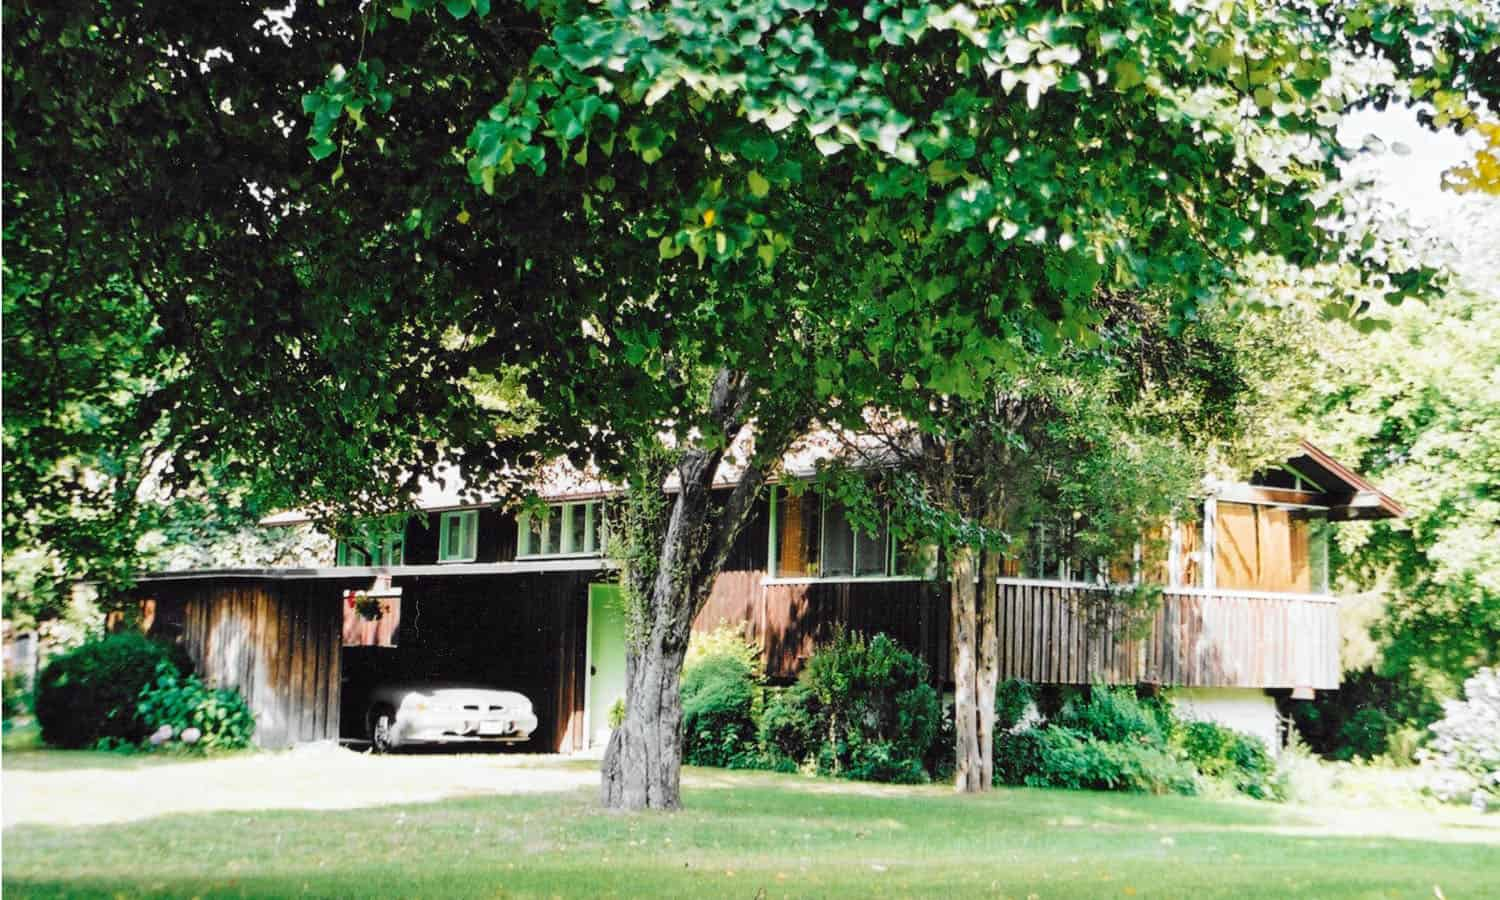 The two-bedroom, gabled house was designed by Vancouver architect Fred Brodie